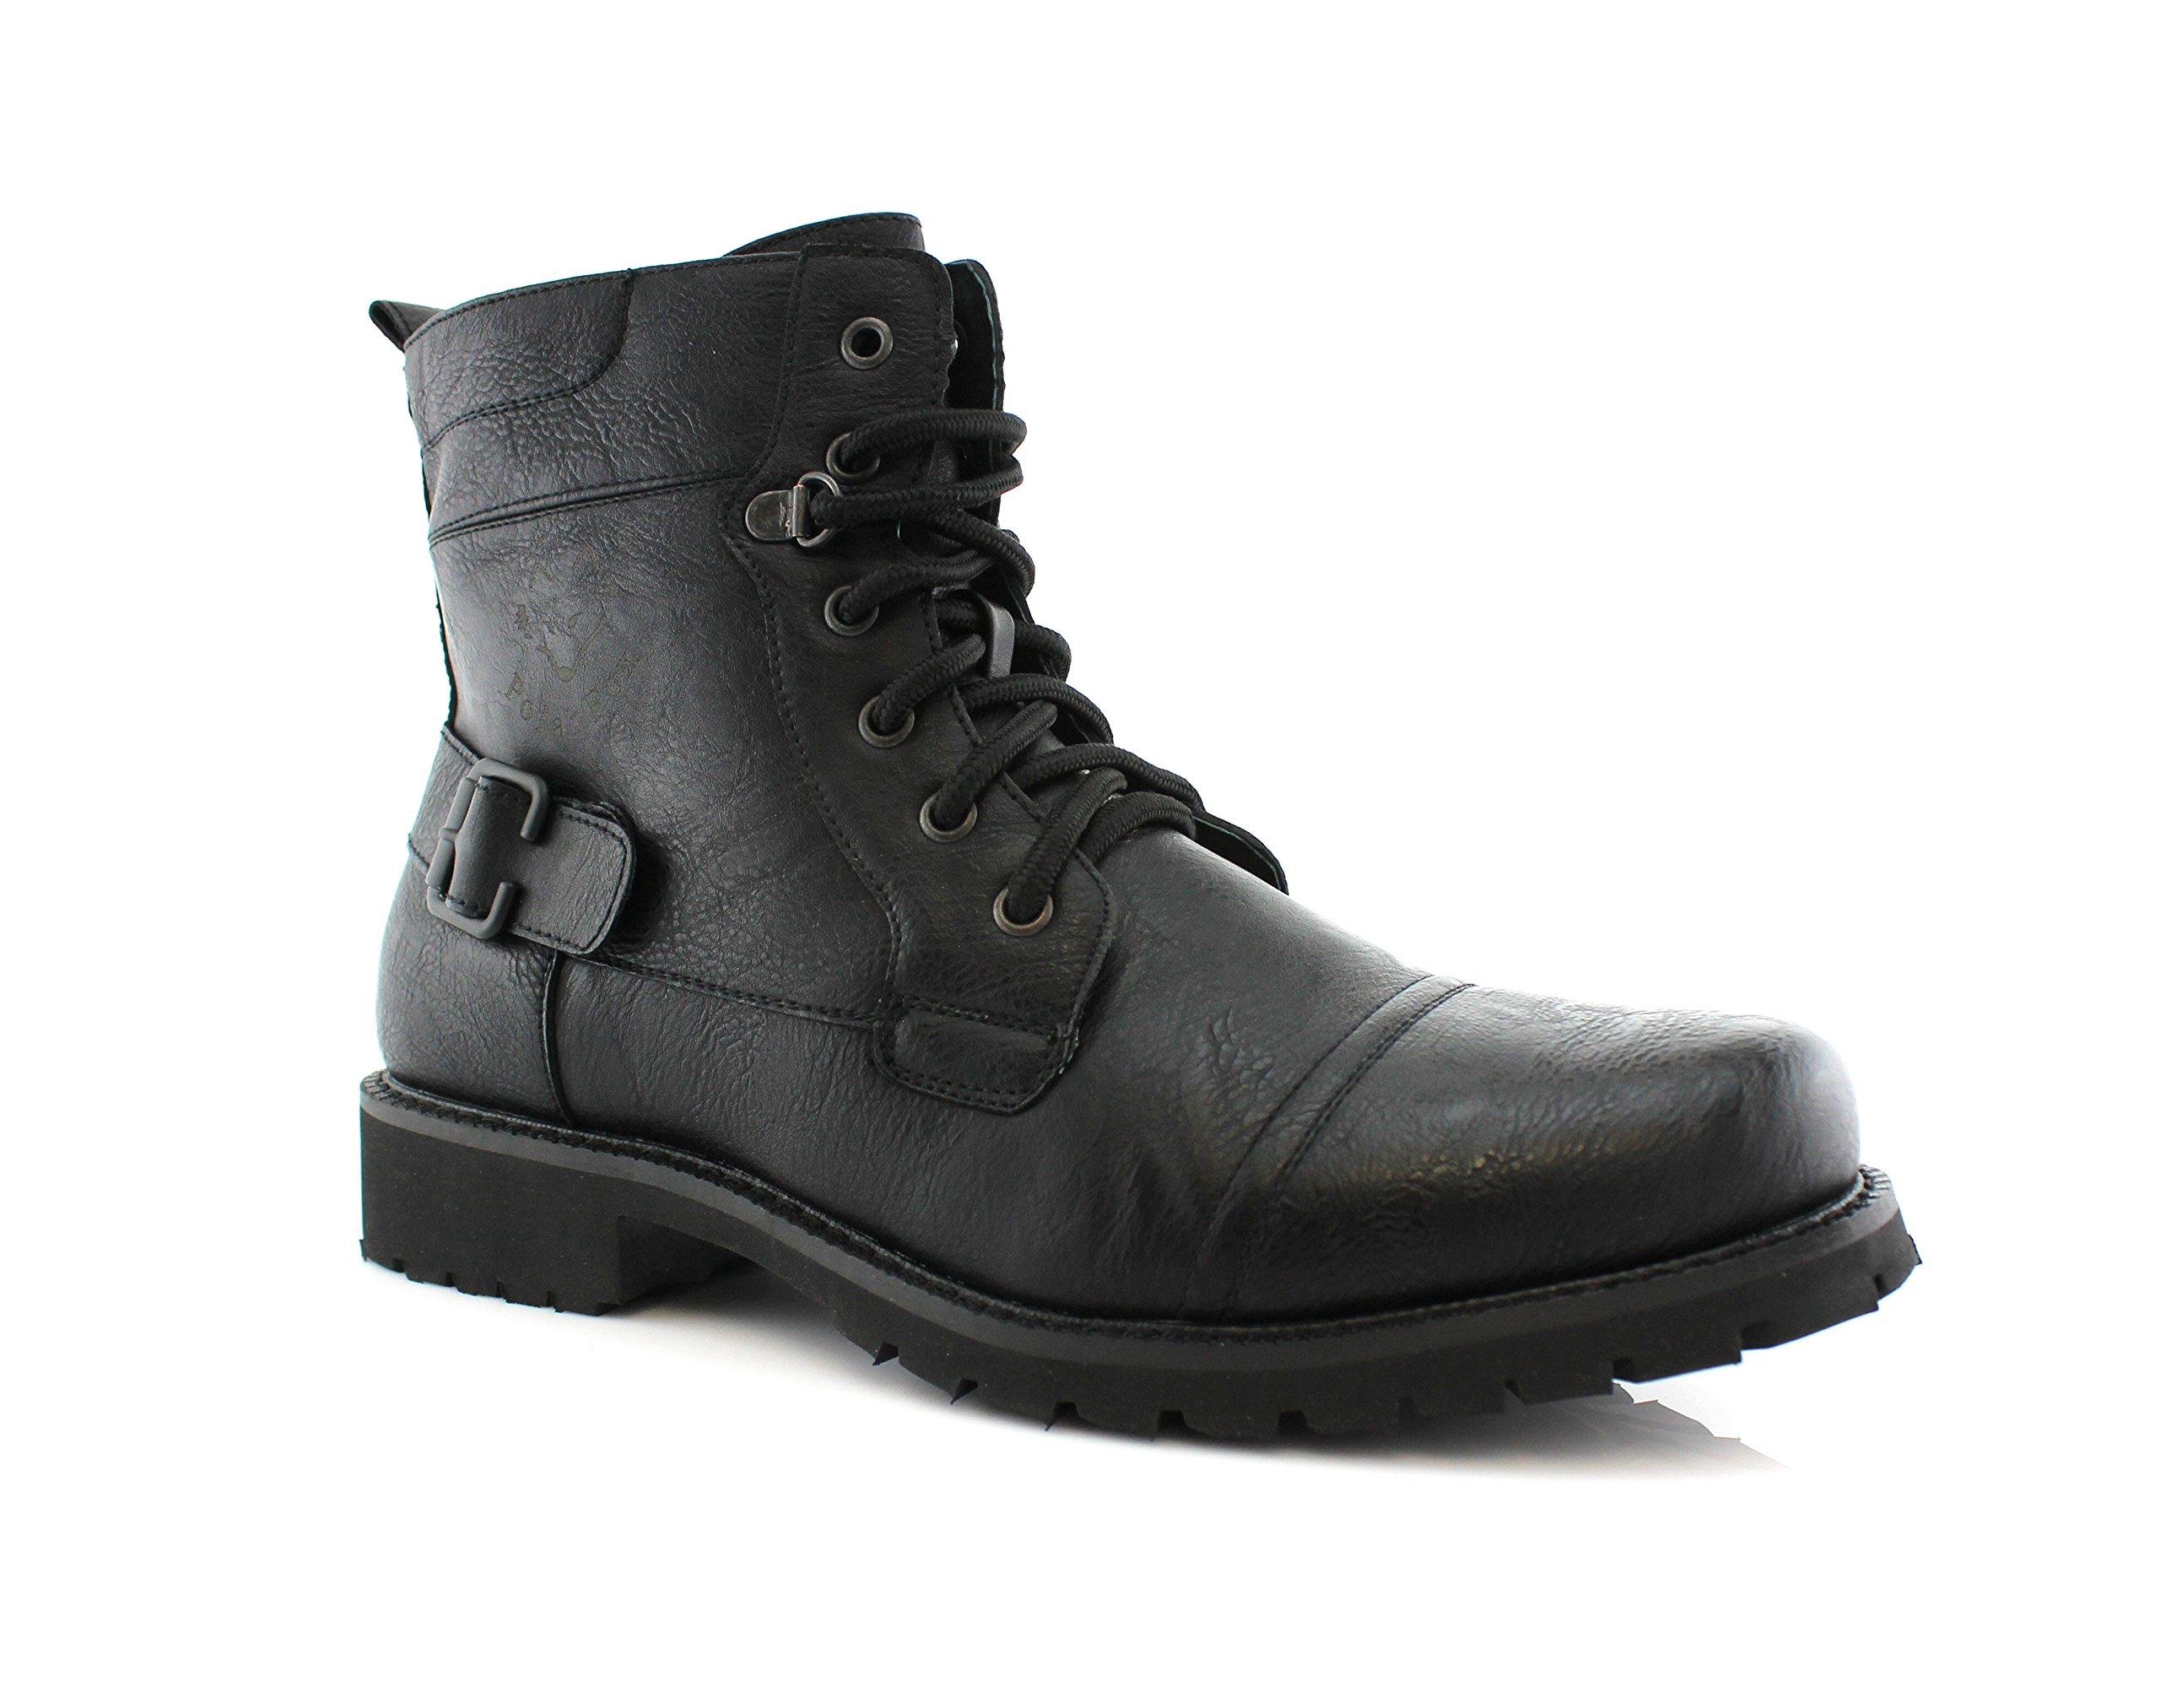 Polar Fox Fabian MPX808006 Mens Dress Work Motorcycle Combat Boots - Black, Size 9